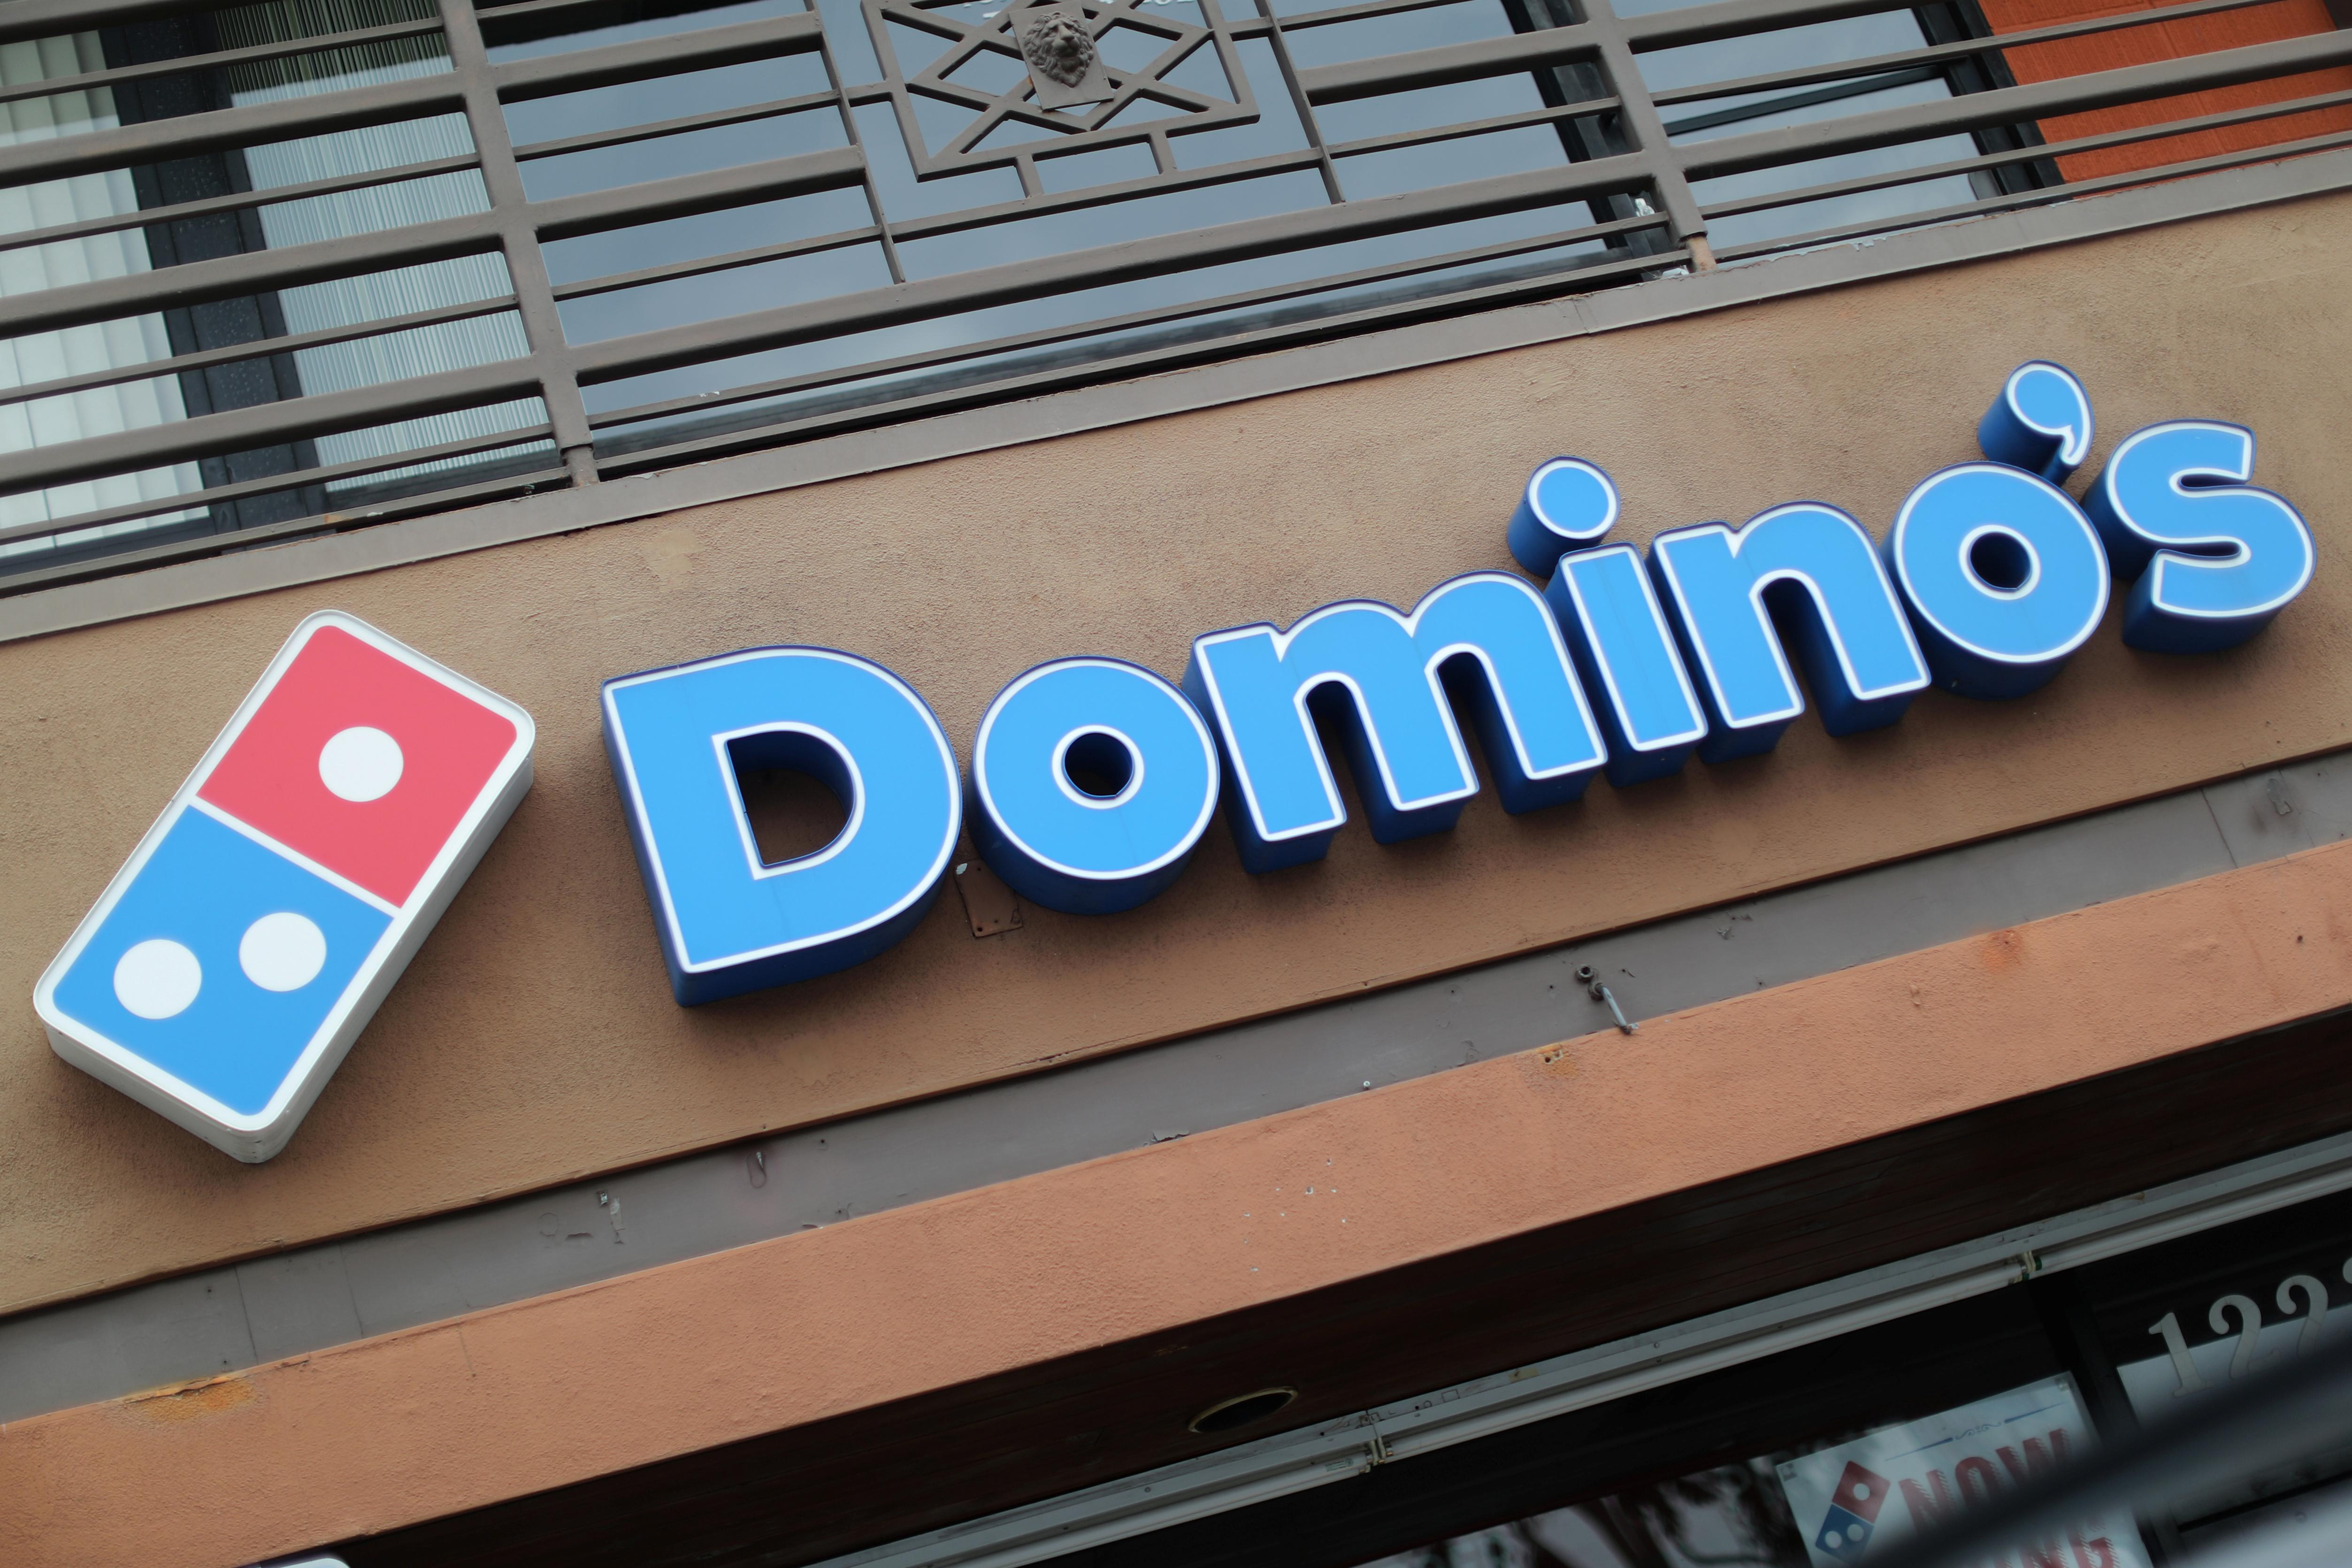 Domino's shares slide as same-store sales disappoint